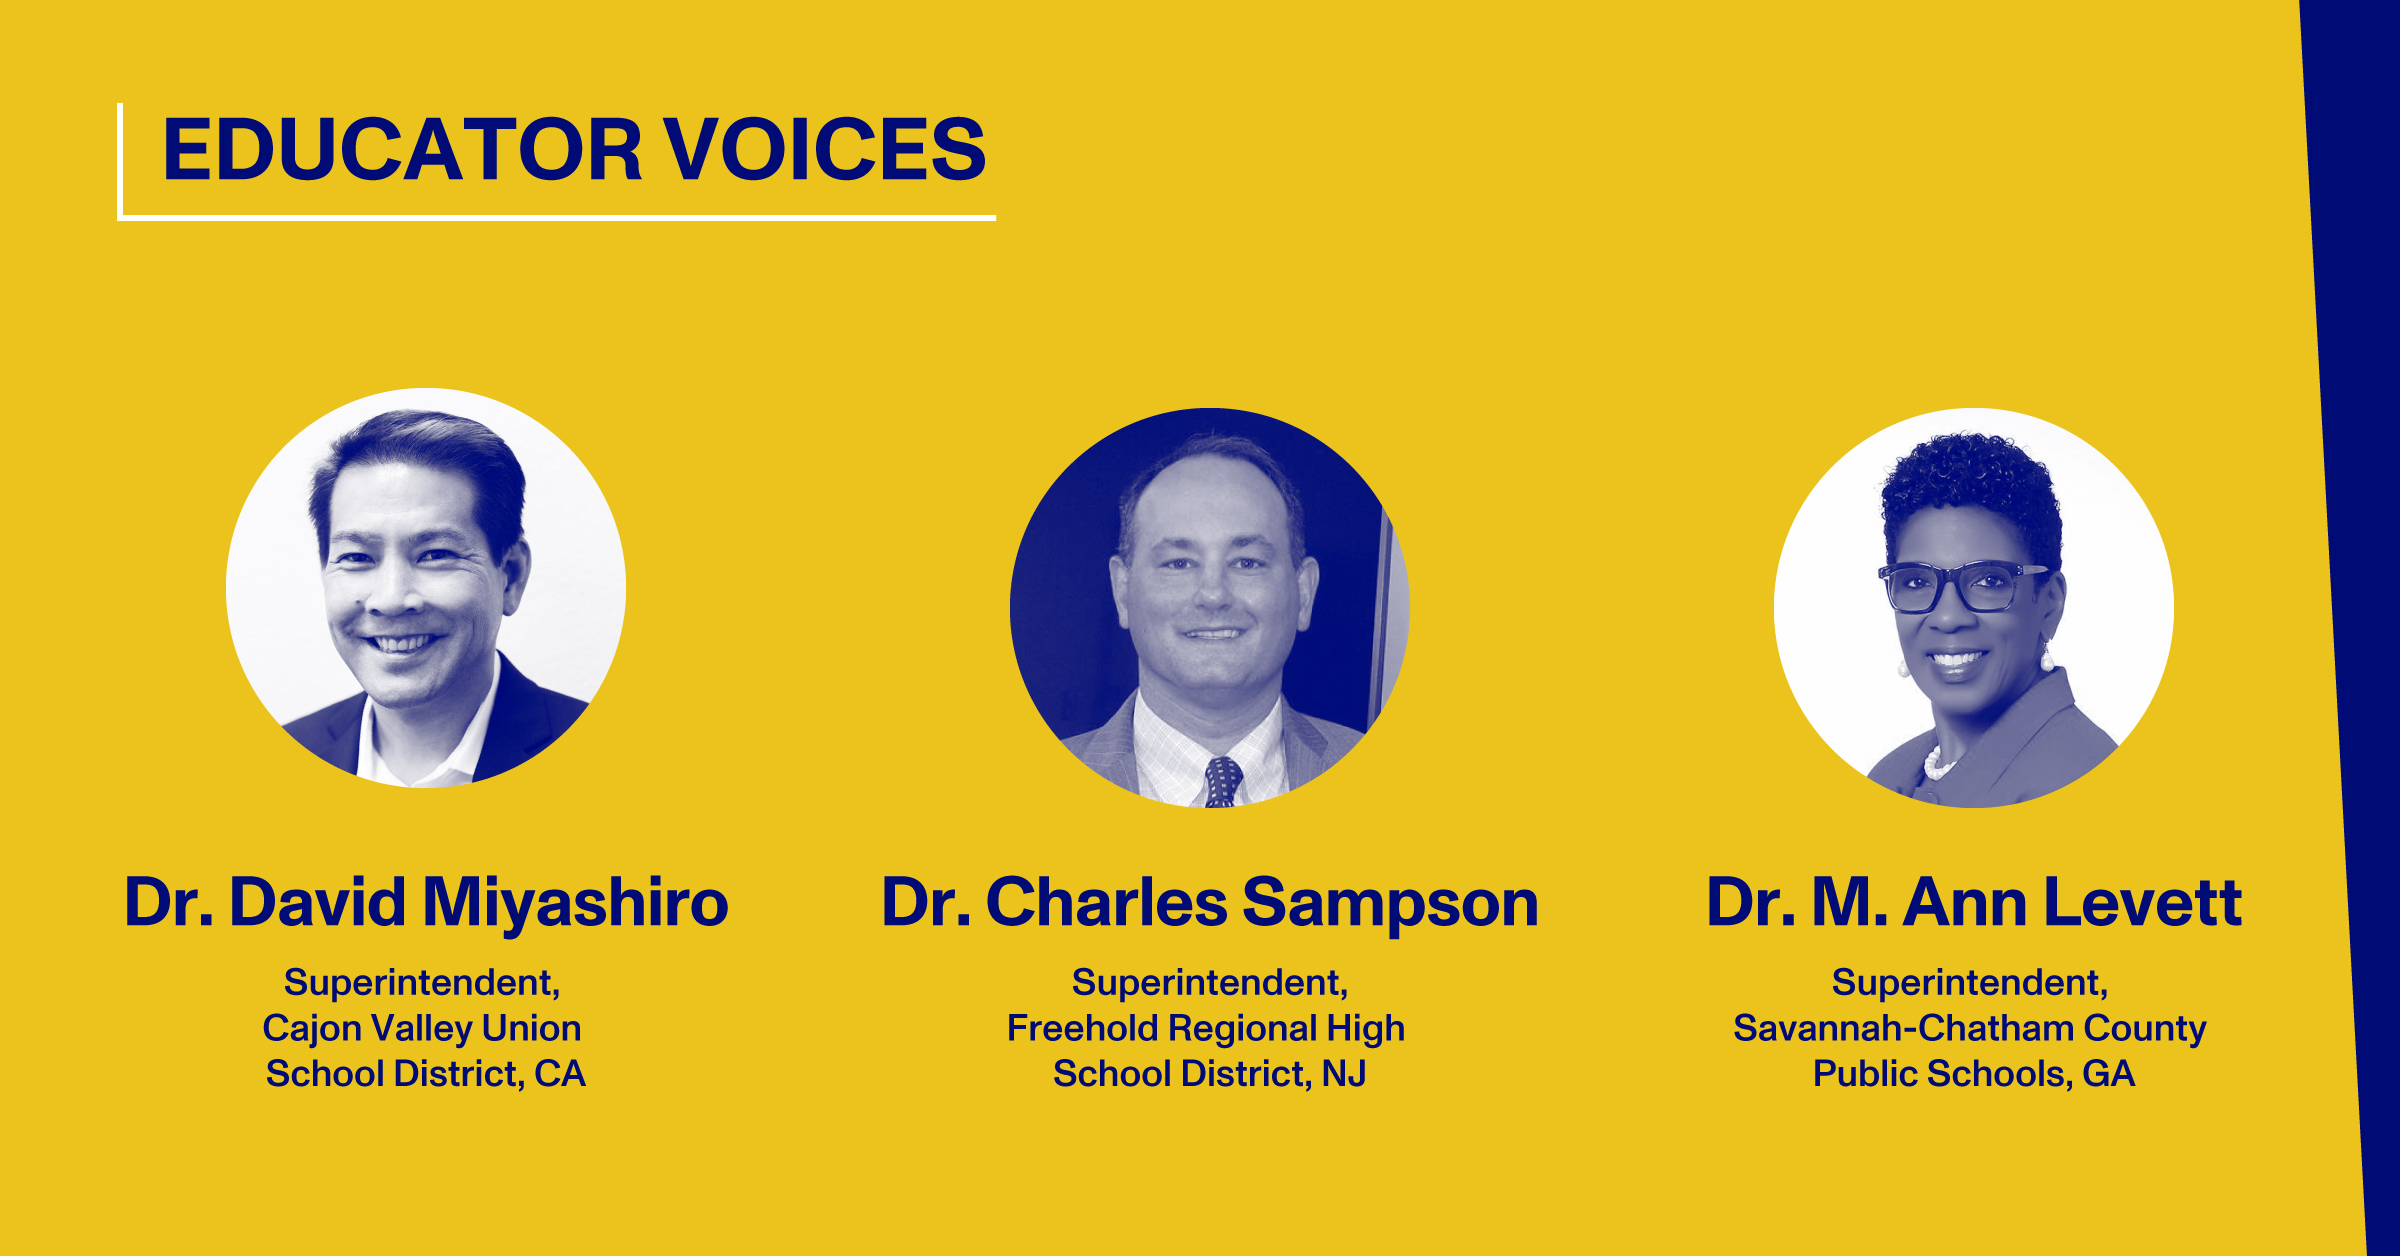 Blog Thumbnail with Headshots of Dr. David Miyashiro, Dr. Charles Sampson, Dr. M. Ann Levett